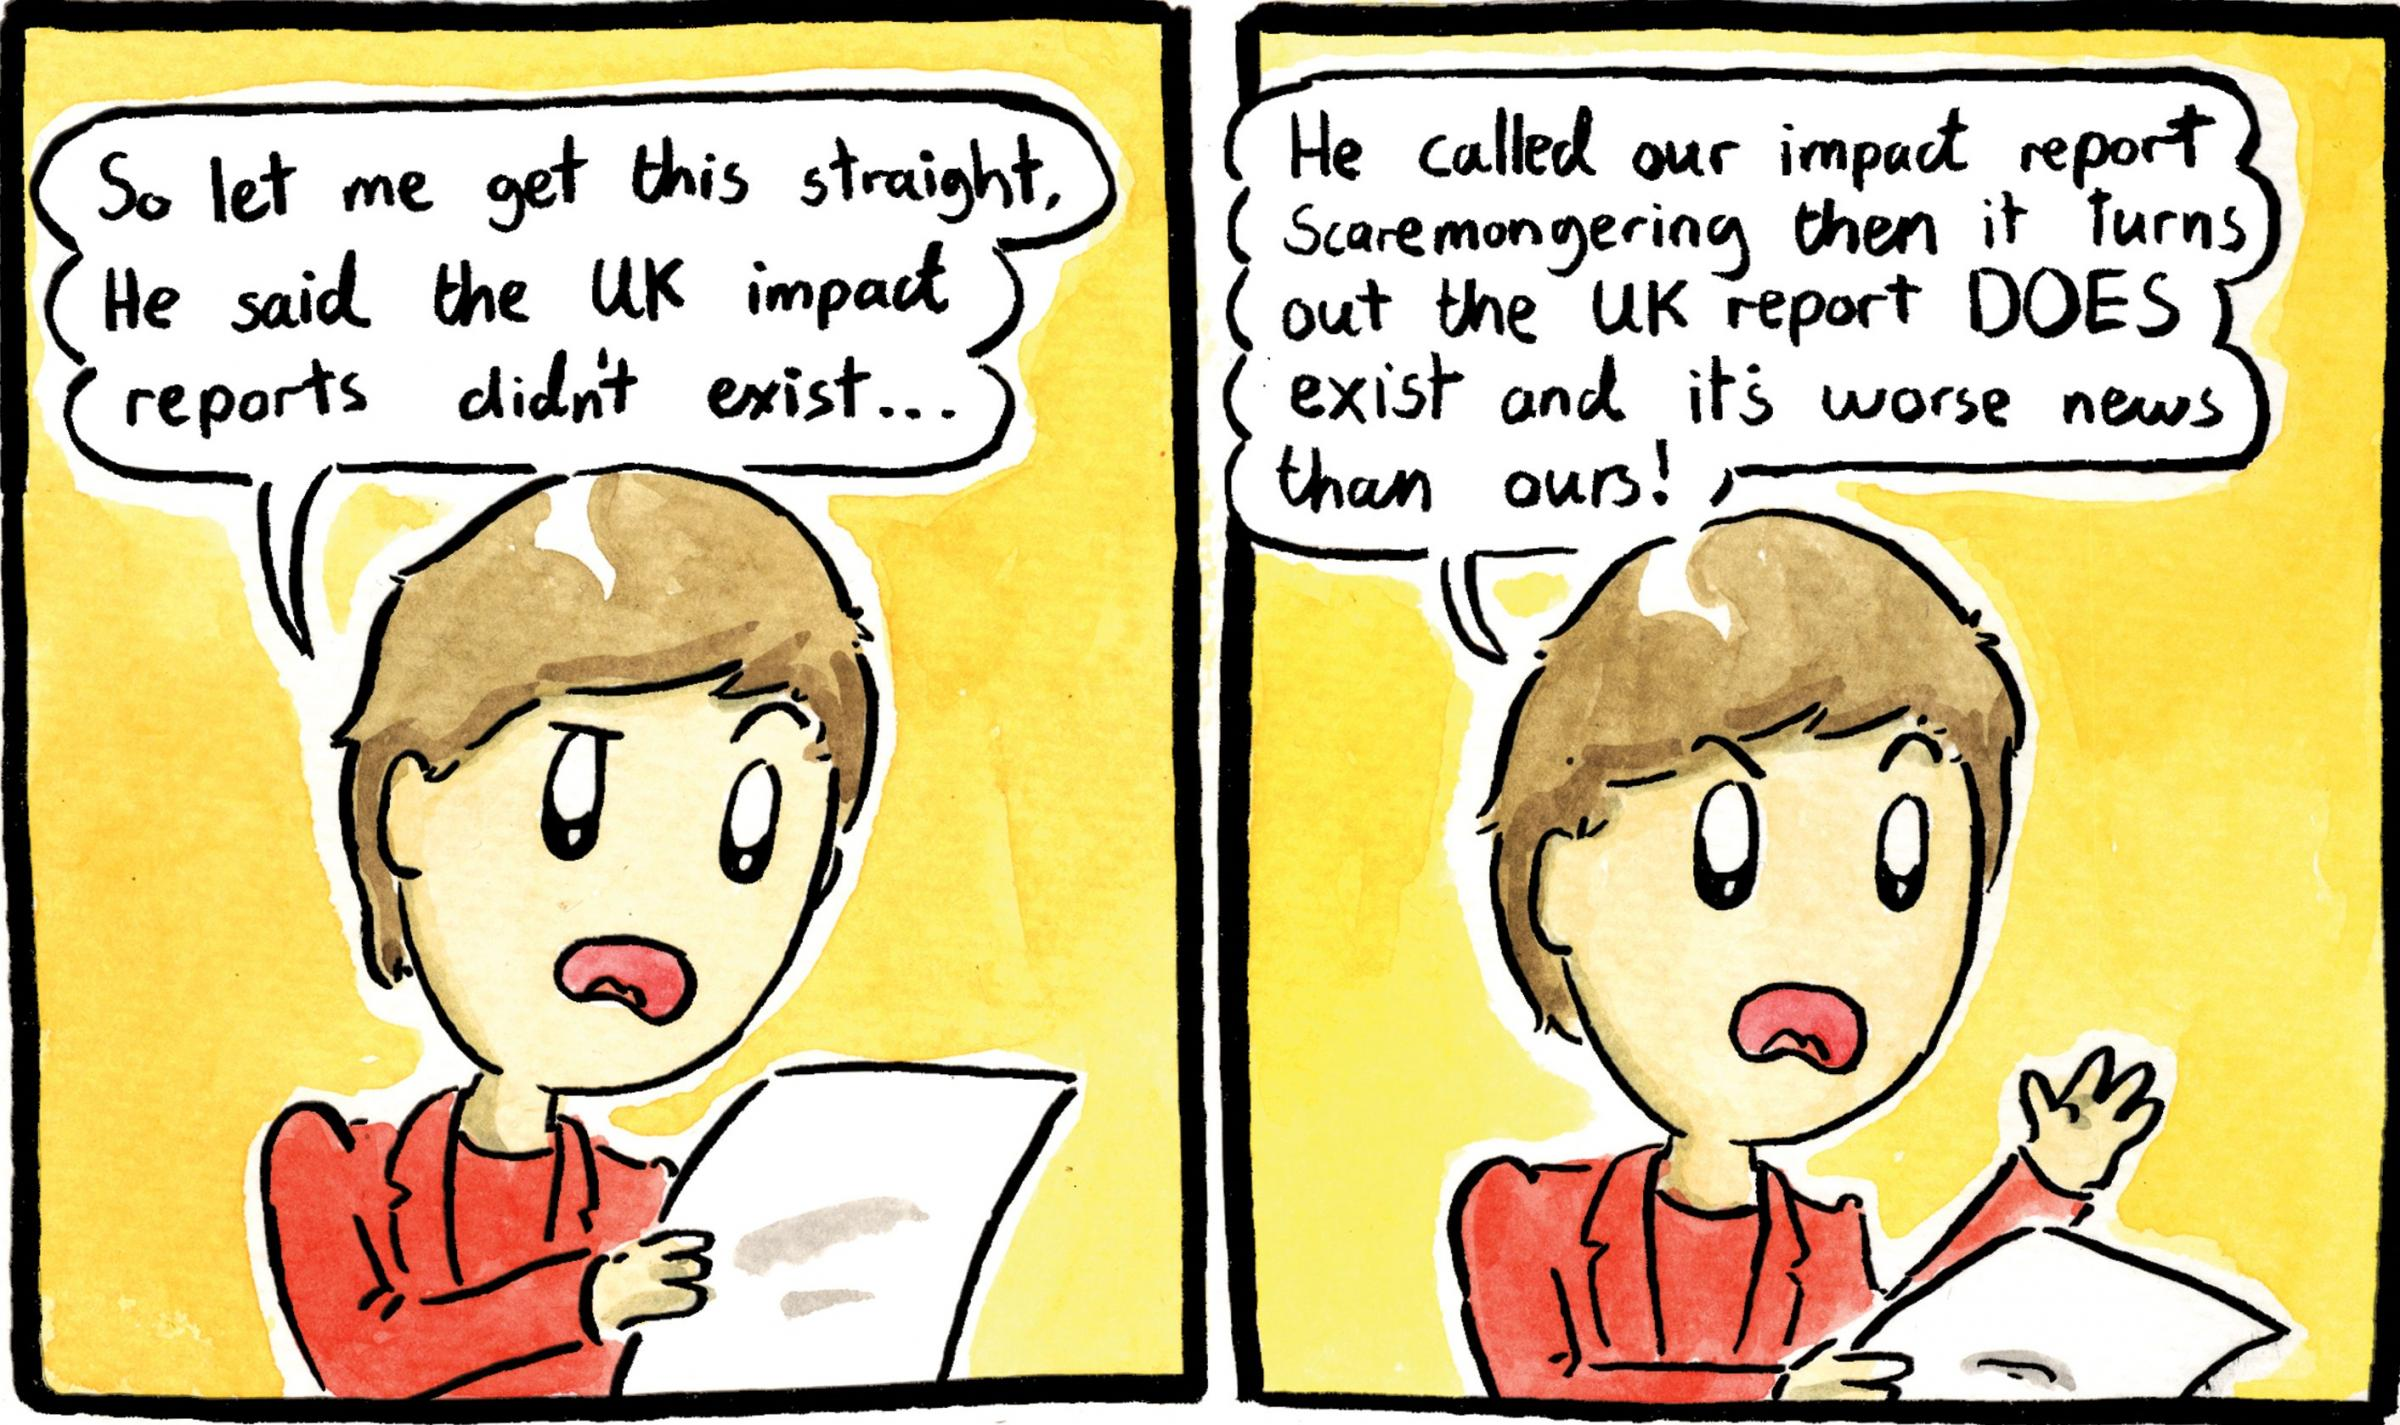 Nicola Sturgeon learns the latest about the UK's Brexit impact assessments